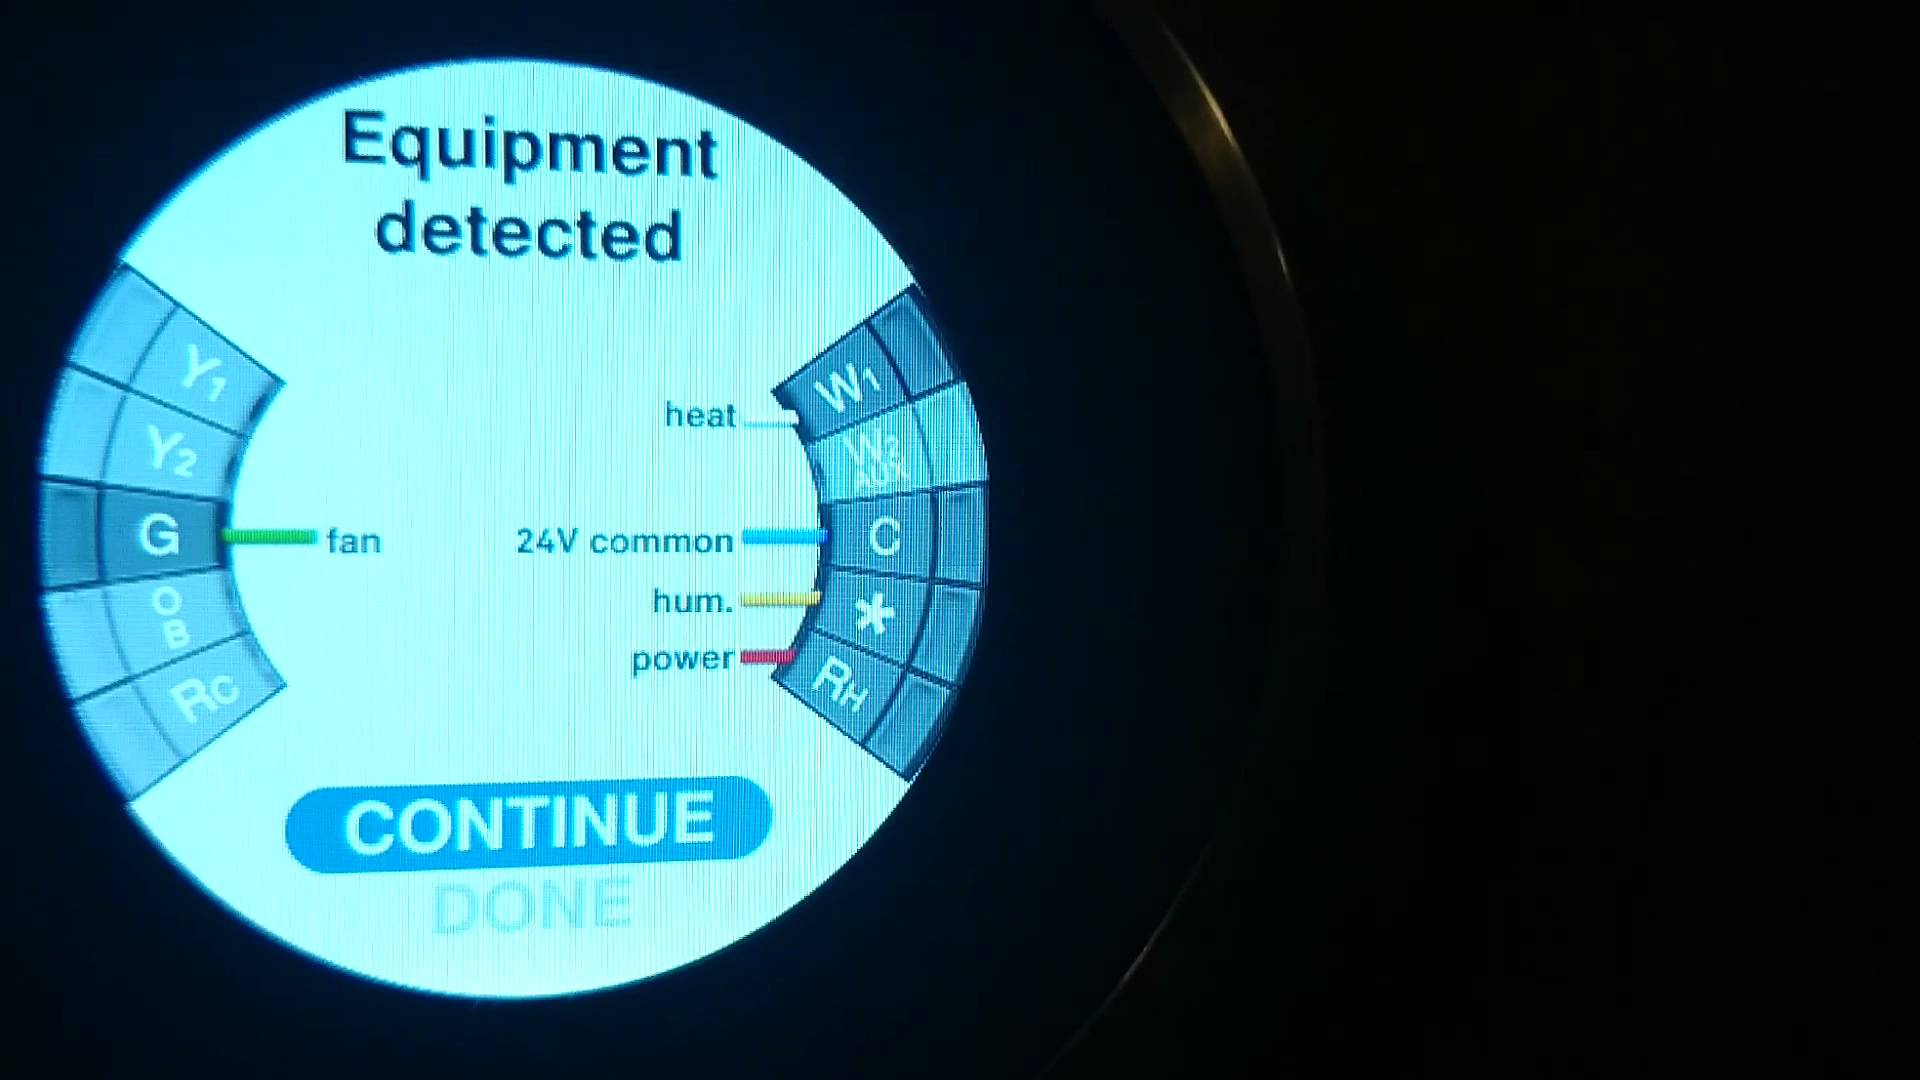 Wiring Diagram For Nest Thermostat With Humidifier - Wiring Diagrams - Honeywell Heat Pump Nest Thermostat Wiring Diagram